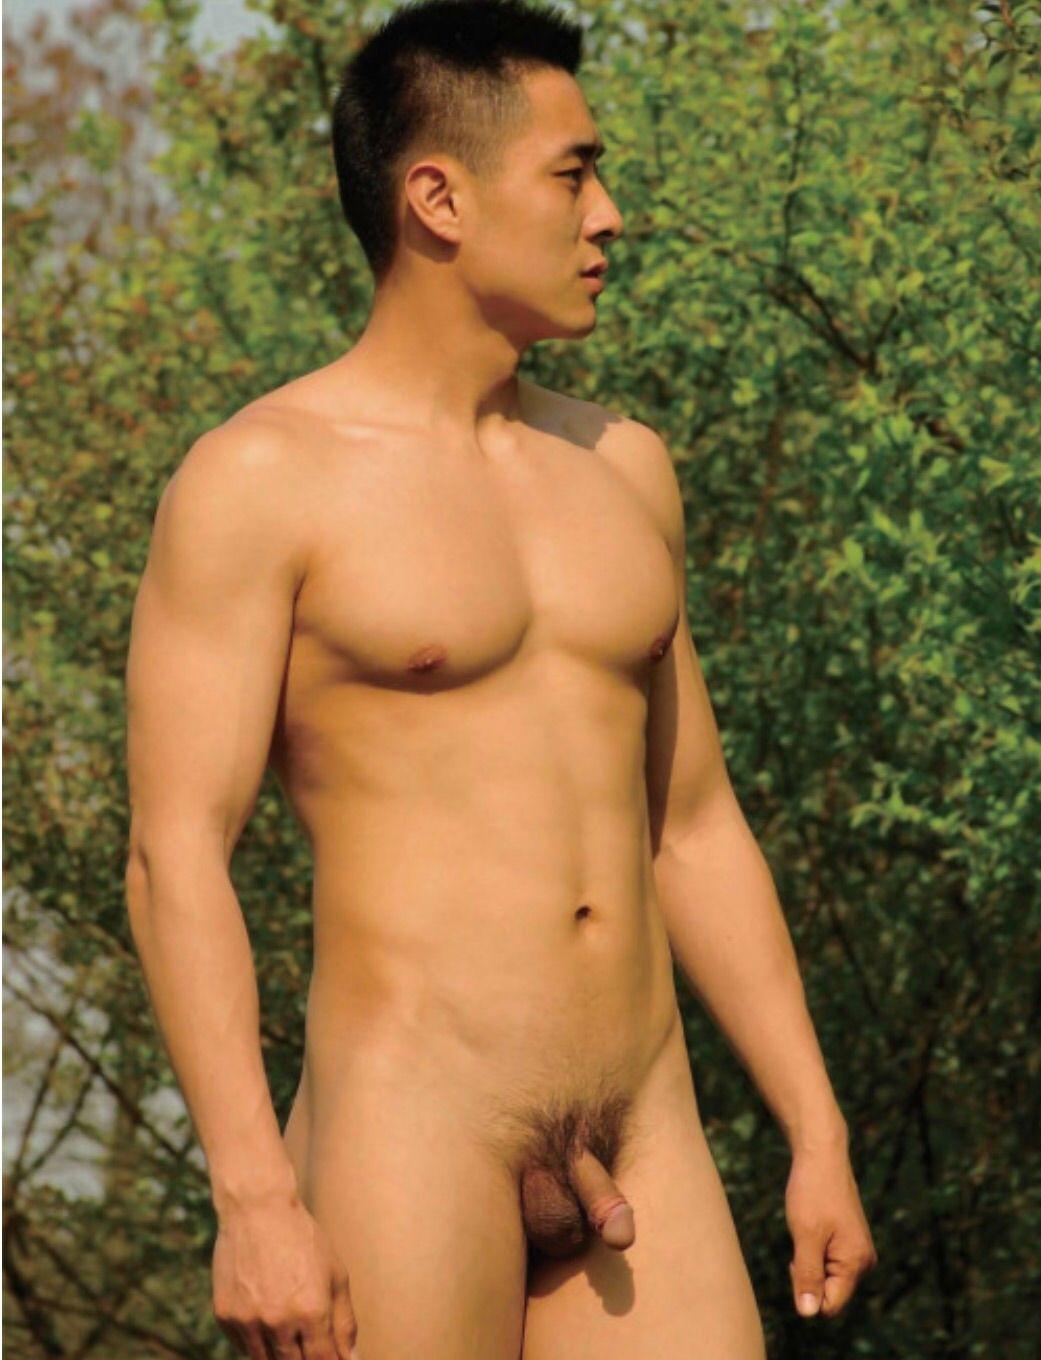 Asian Boy Porno asian male frontal nudity images - sex photo. comments: 1